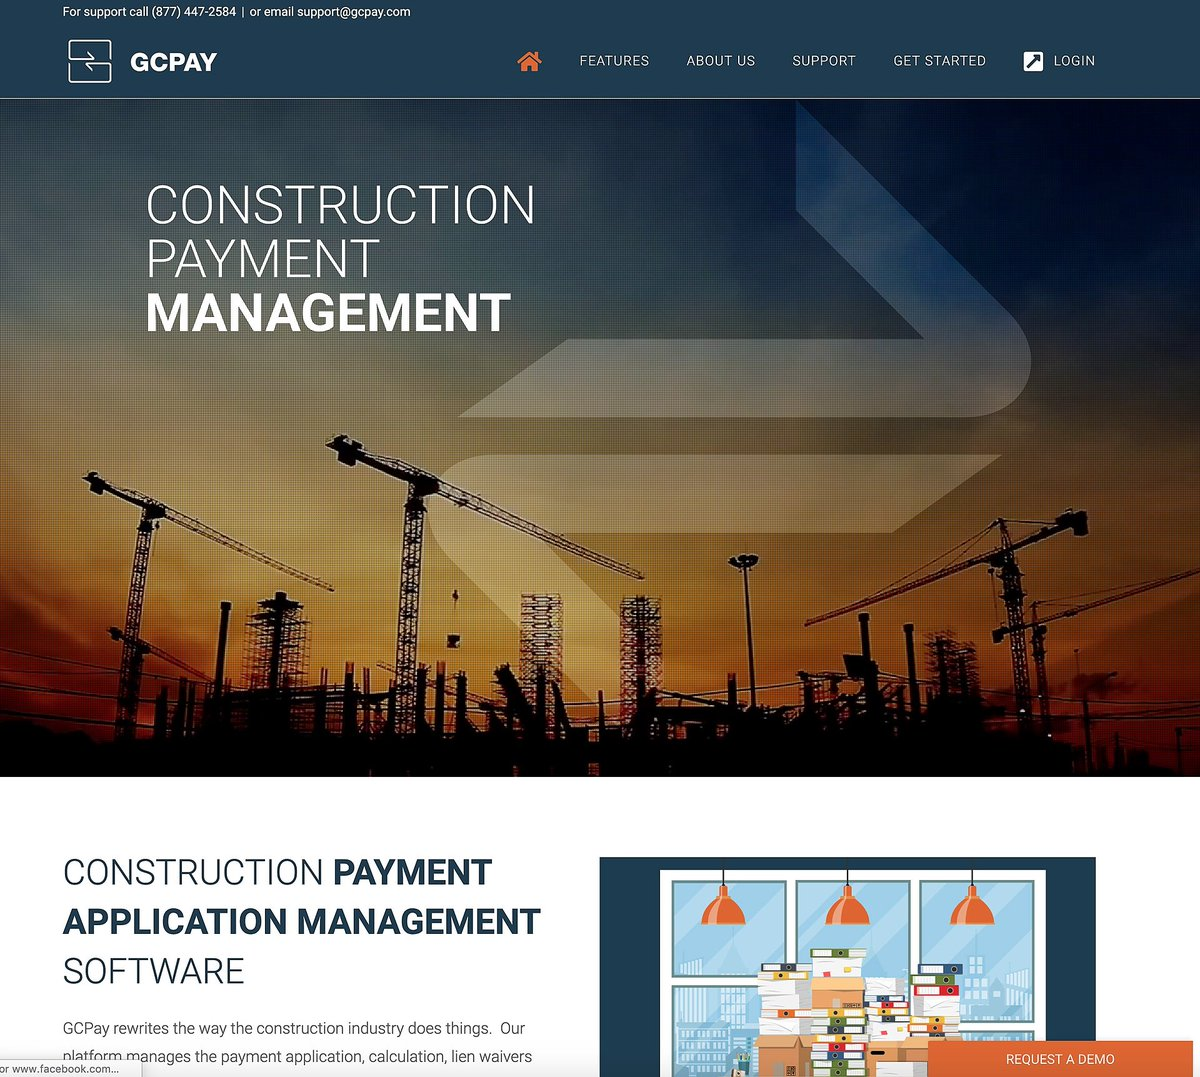 """test Twitter Media - """"There must be a better way to manage construction subcontractor payments"""". Take a look at the updated https://t.co/RPrYGsLaYt website to learn how GCPay can work for you. #CPM #contech #constructiontech #constructionpayments #subcontractorpayments https://t.co/QbnIlHV0Yw"""